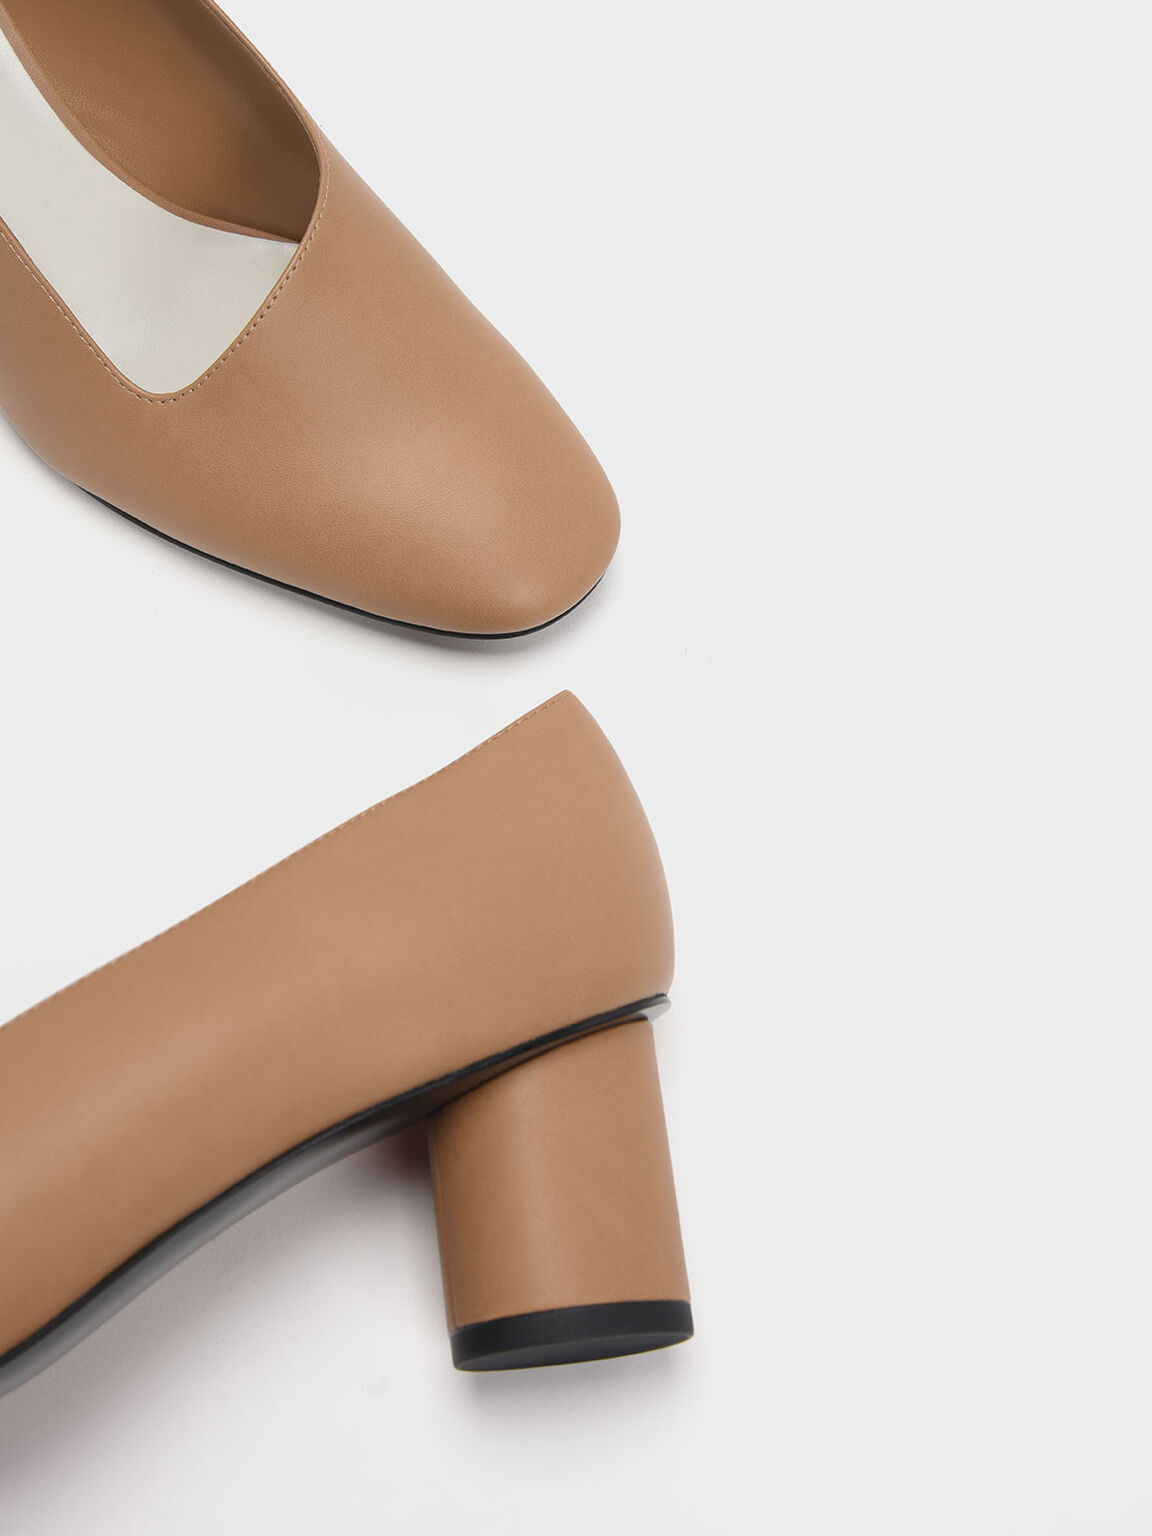 Asymmetric-Cut Cylindrical Heel Pumps, Sand, hi-res